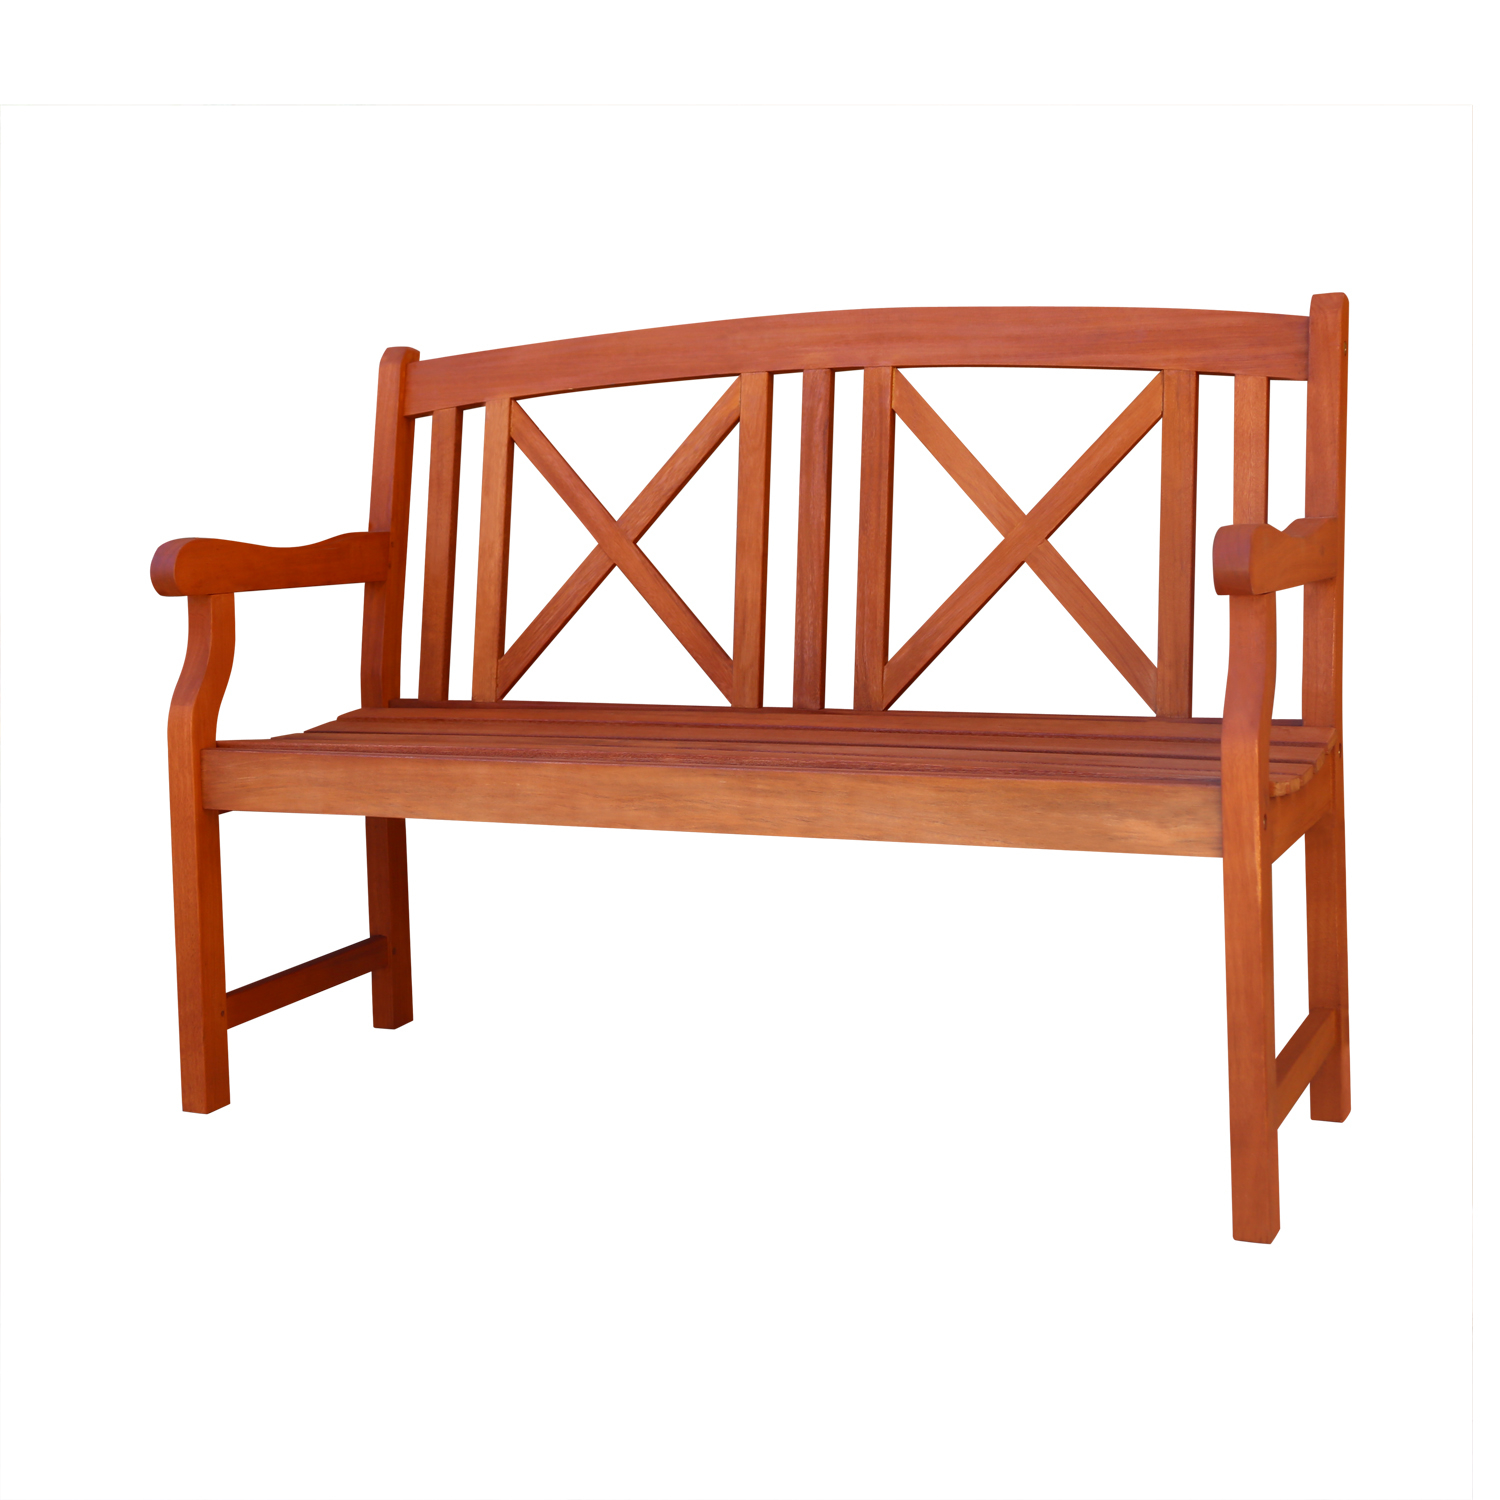 Malibu Outdoor Patio 4-foot Wood Garden Bench